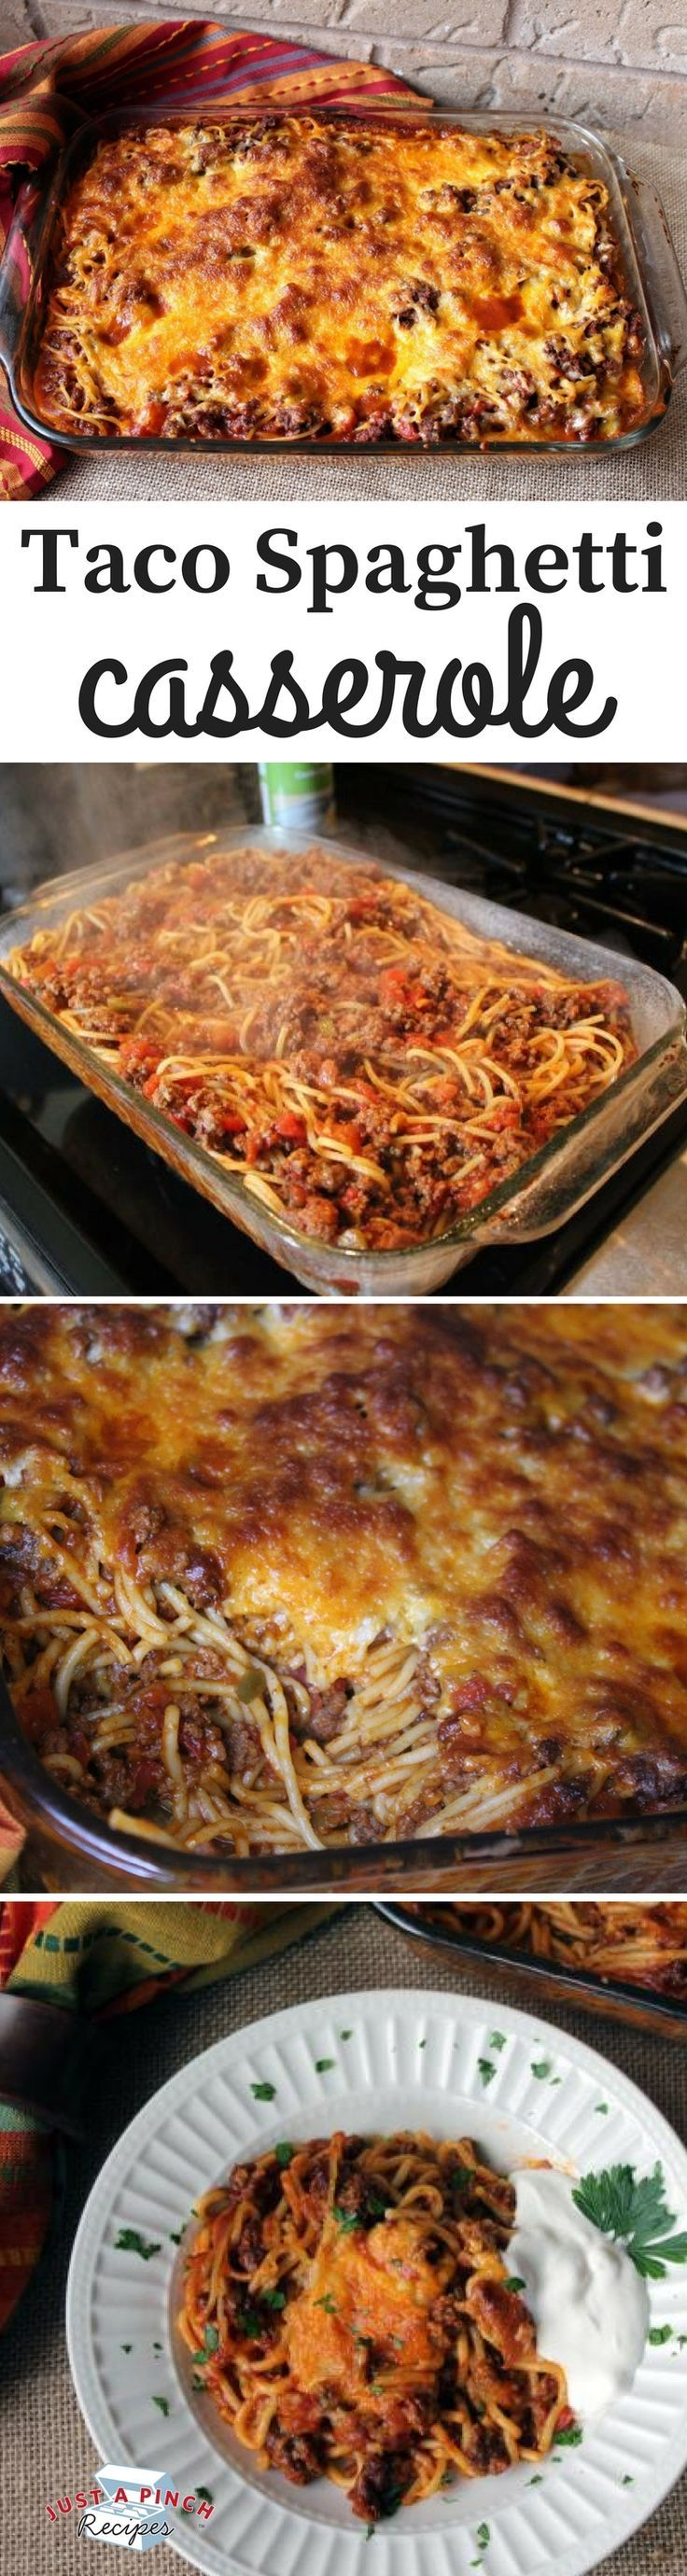 An easy prep casserole that cooks in one pot before it is baked.